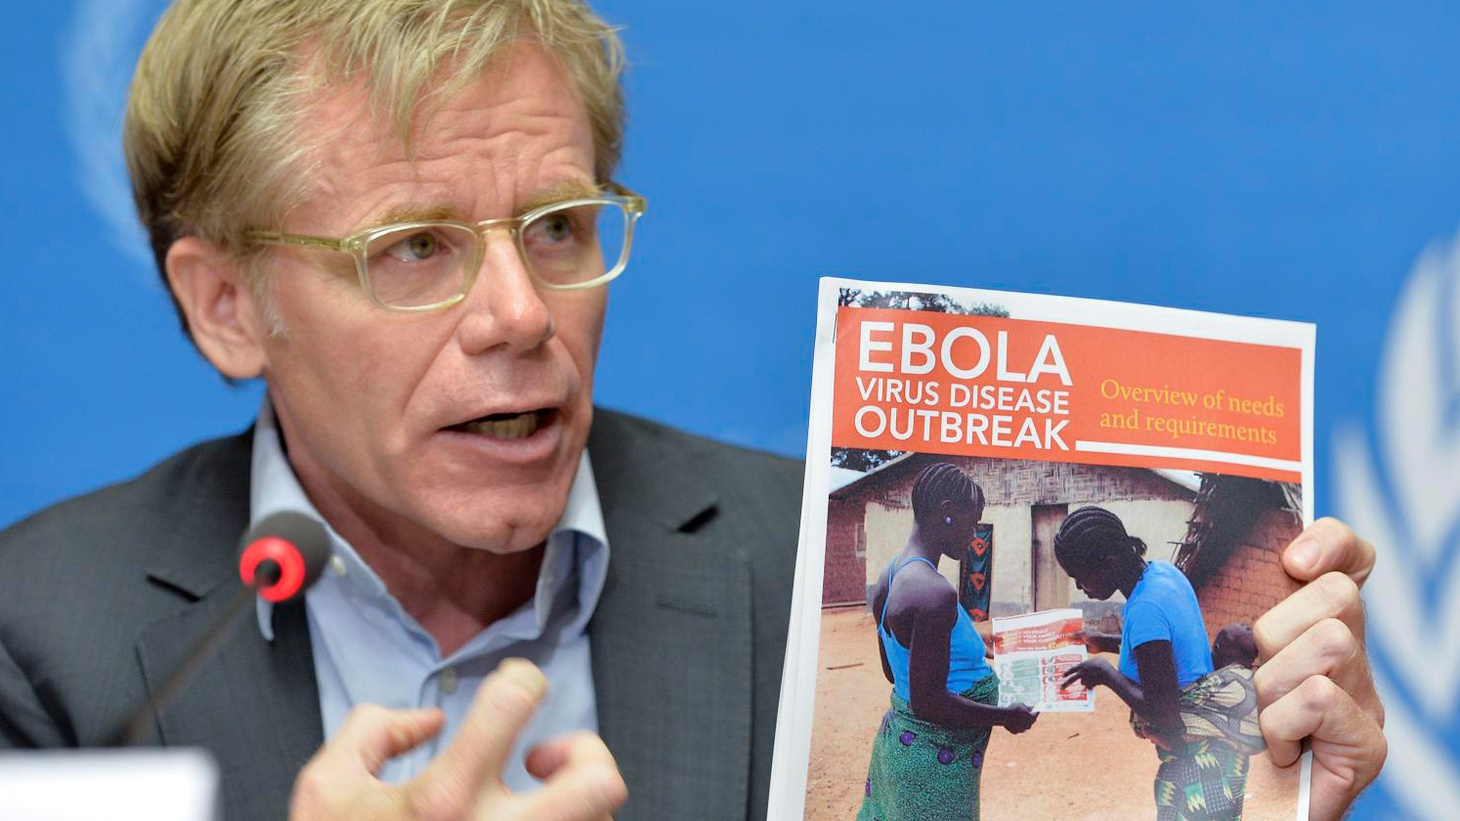 President Obama plans to announce a new response to the Ebola epidemic in West Africa today. We discuss whether the plan goes far enough. And we talk with an emergency medical worker who's in Liberia fighting the outbreak.